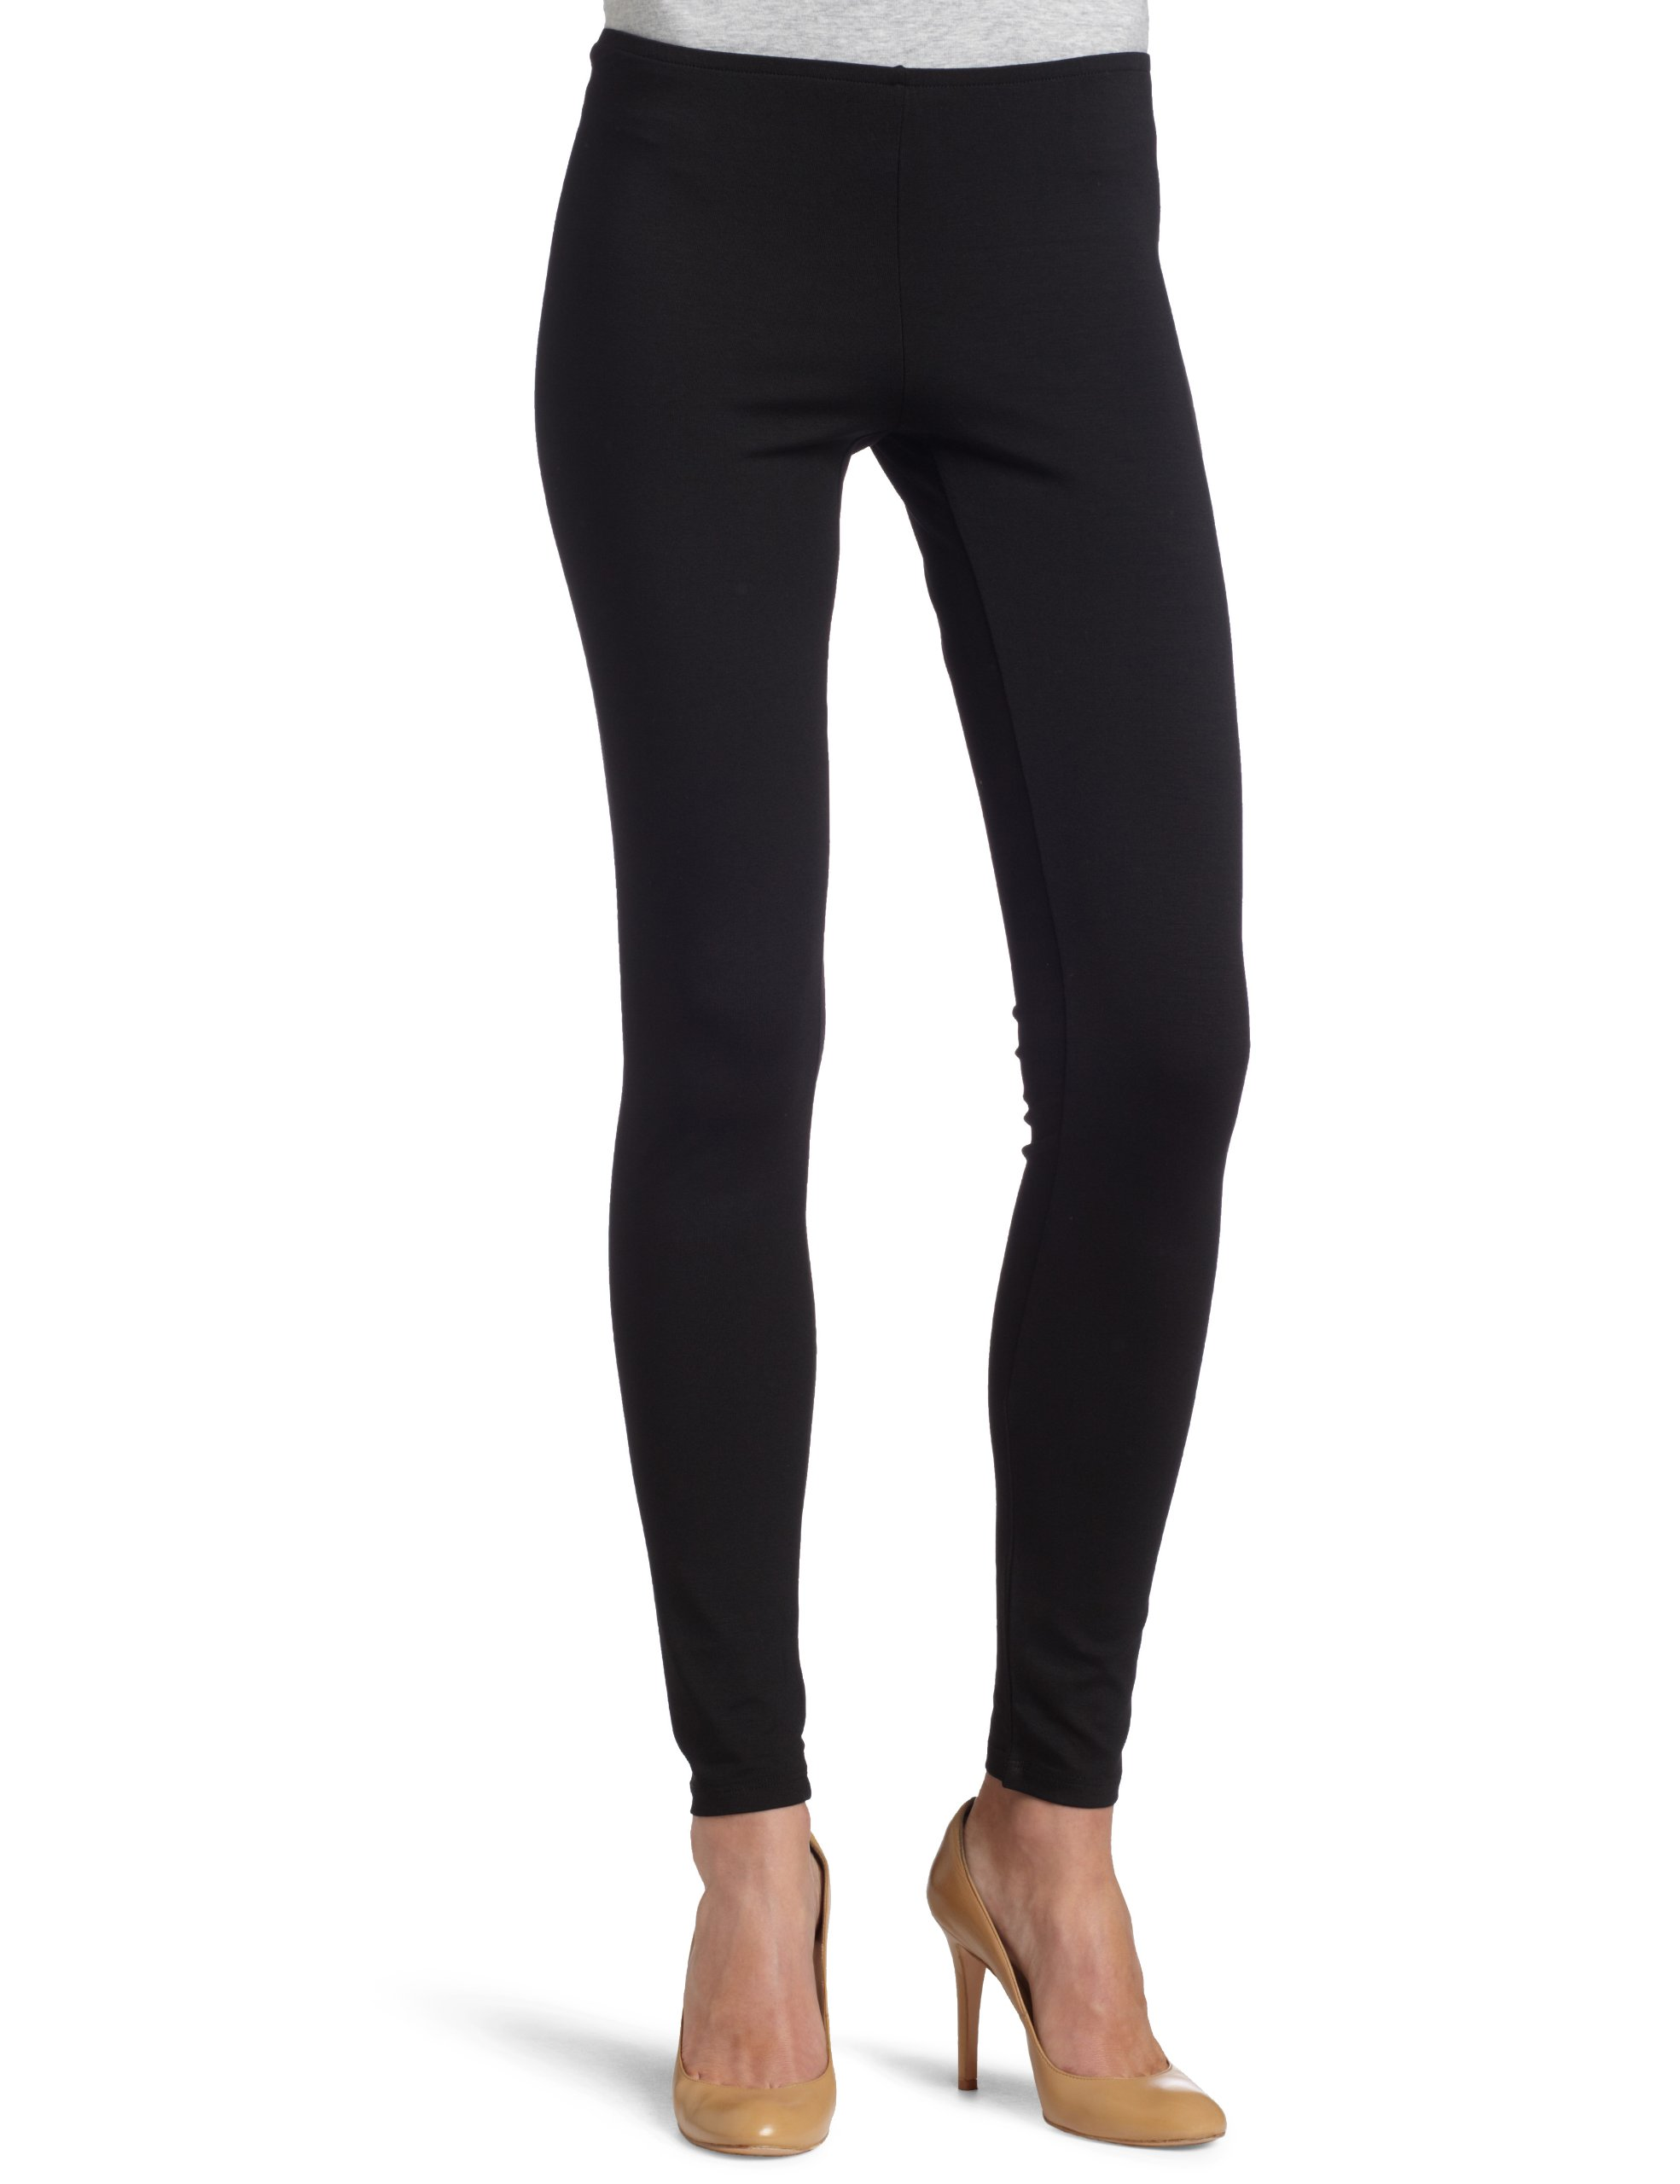 Only Hearts Women's So Fine Legging - 20078,Black,X-Small by Only Hearts (Image #1)